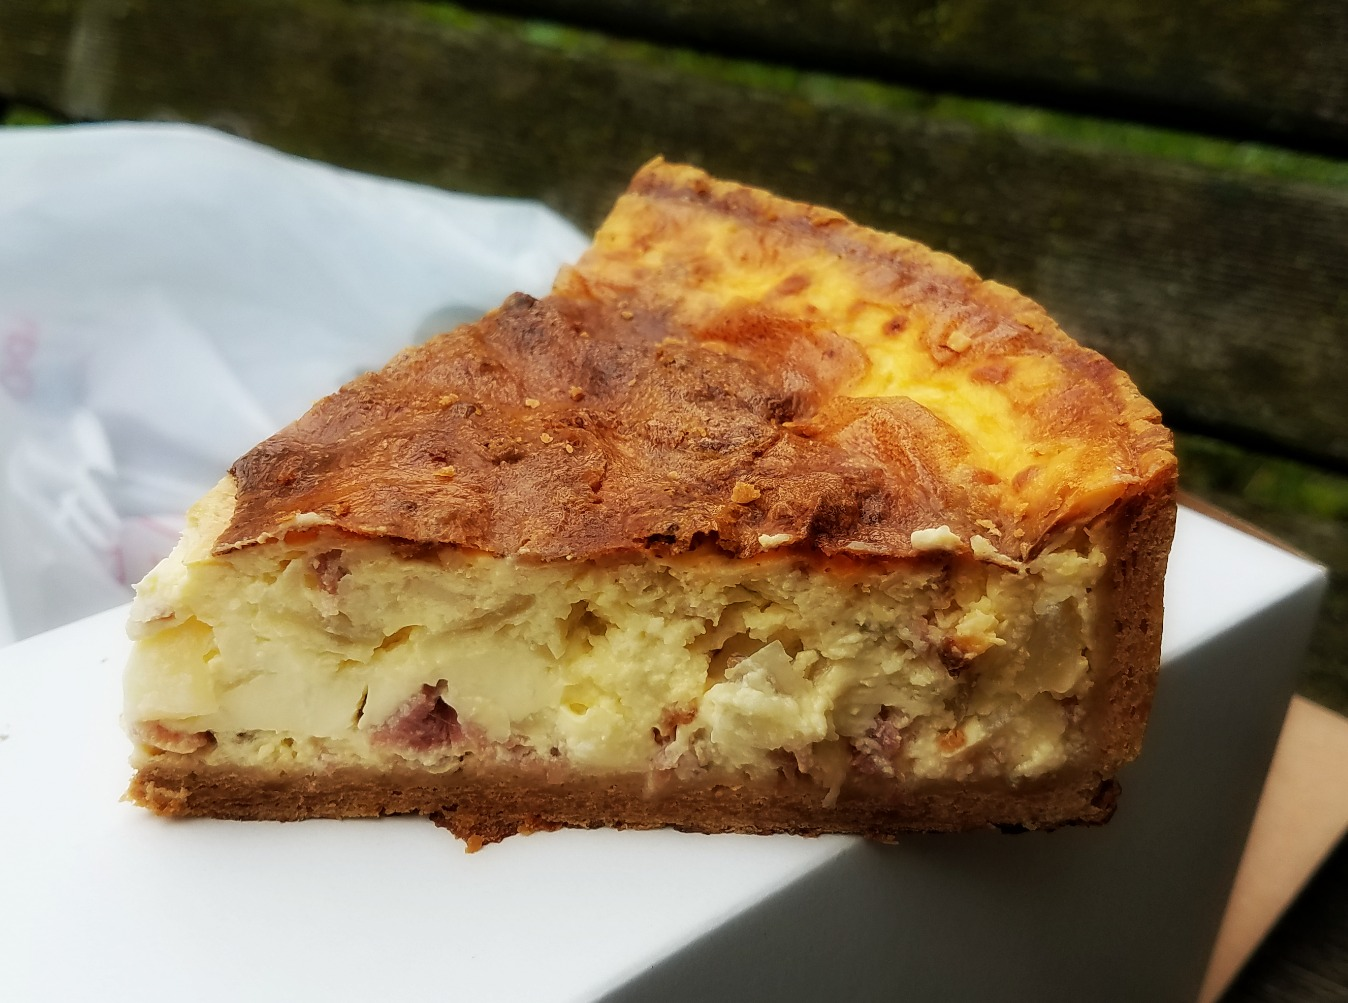 I'm not saying you couldn't mug someone with this quiche by hitting someone in the head with it, but I'm not NOT saying it.